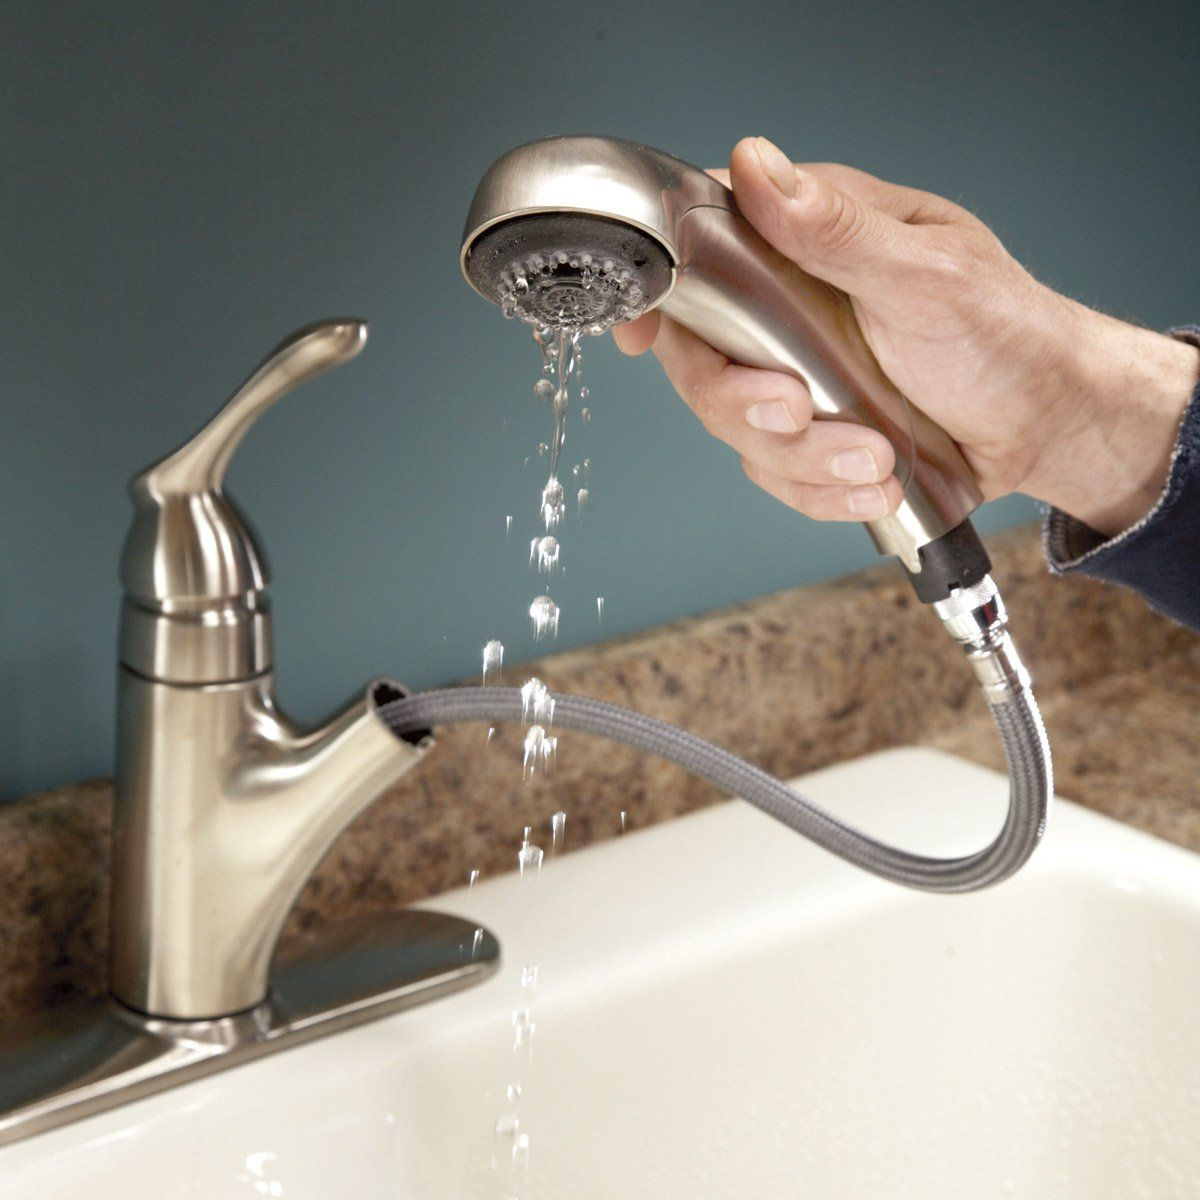 Slow Running Water Unclog The Aerator Faucet Repair Faucet